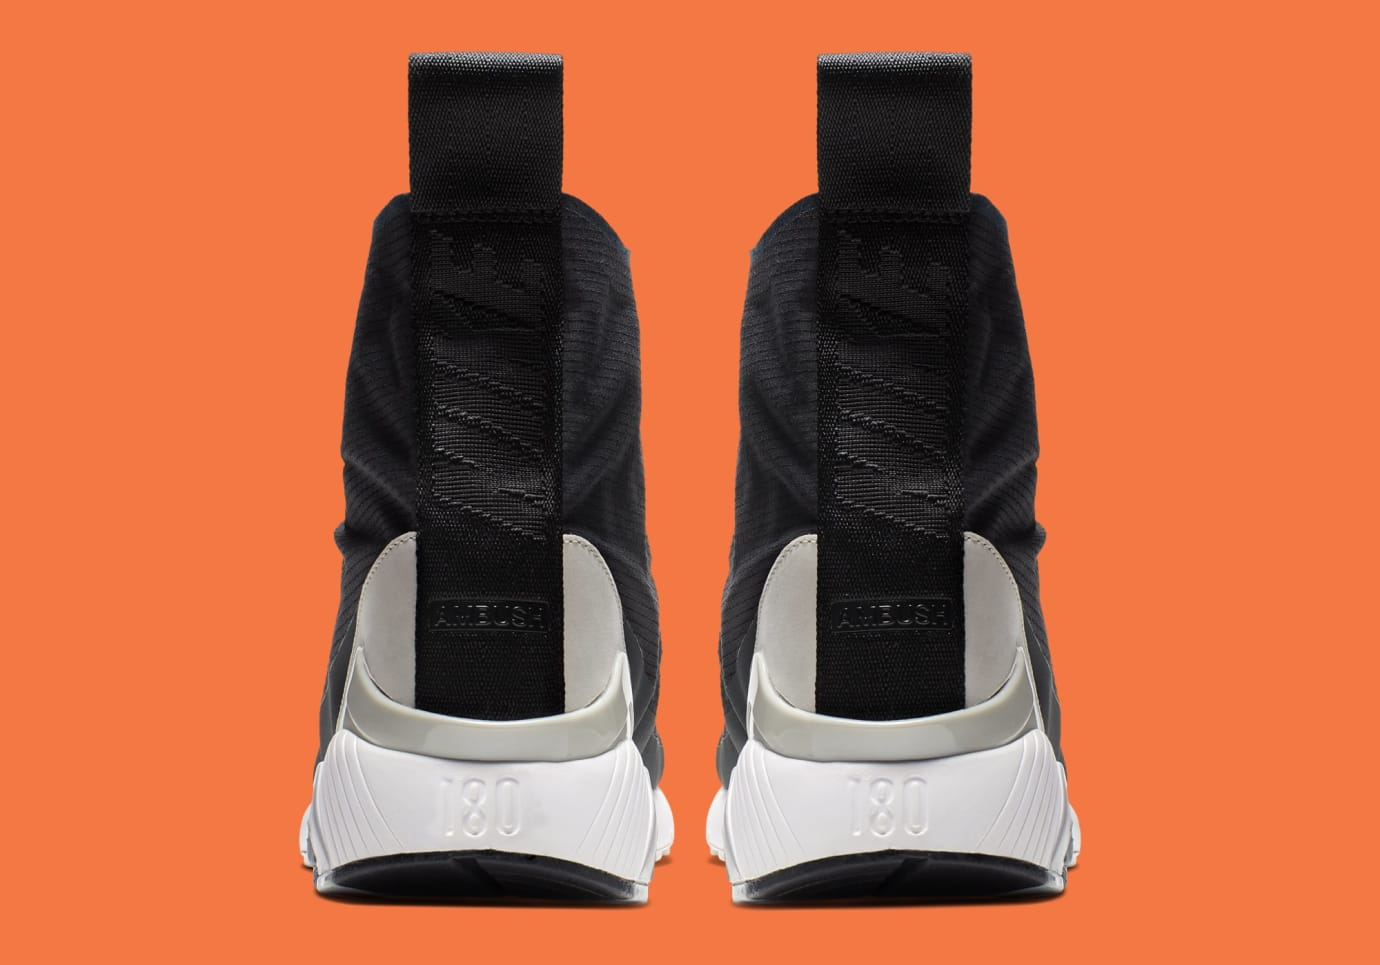 Ambush x Nike Air Max 180 Hi 'Black/Black-Pale Grey' BV0145-001 (Heel)